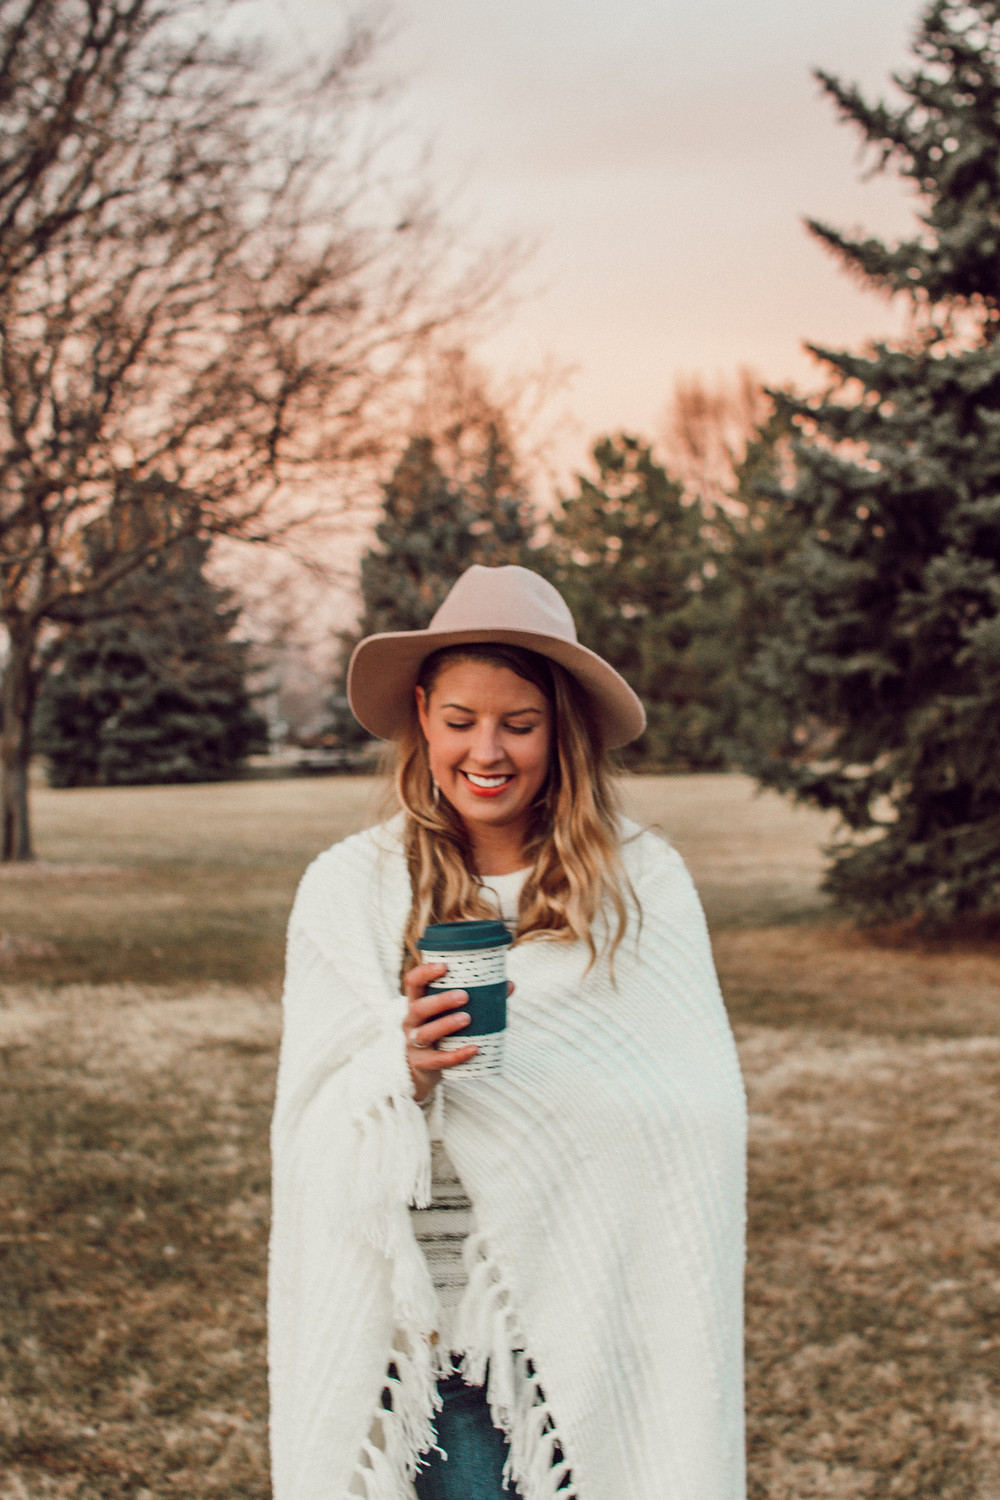 Holly Canon Travel and Lifestyle Style Blog Morning Routine Enjoyable 2 Erika Dash Photography Denver Colorado Photographer Blog Blogger Pink Hat White Blanket Colby June Jewelry Target Blonde Hair Big Smile Happy Girl Life Live Jesus Christian